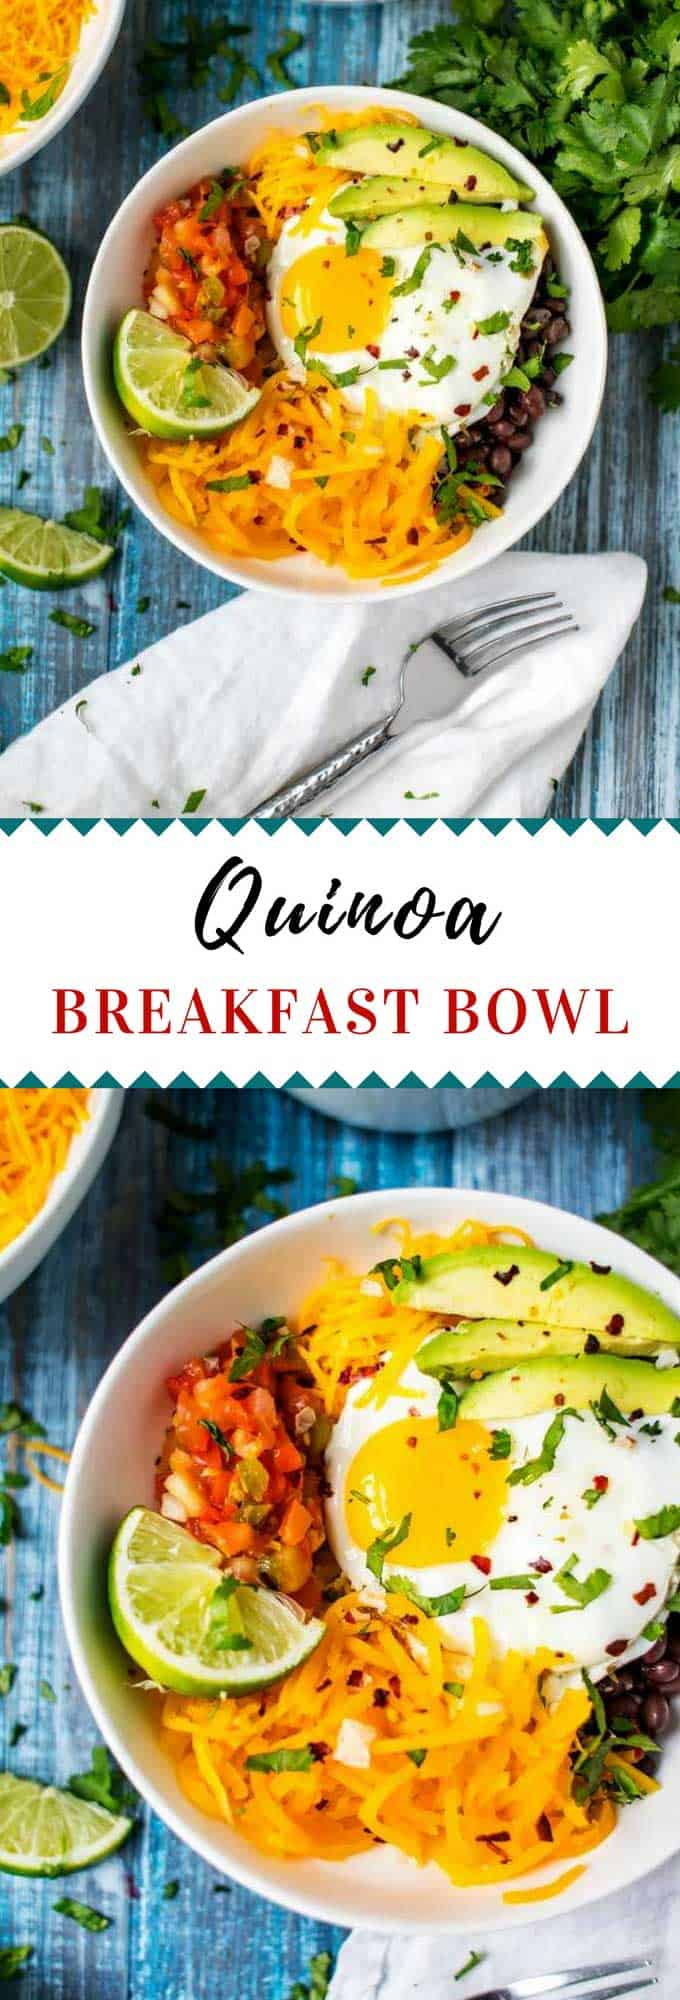 This Quinoa Breakfast Bowl with Egg and Butternut Squash is a great healthy way to start your day. #VeggieSwapIns #IC  #quinoa #veggies #breakfastrecipes